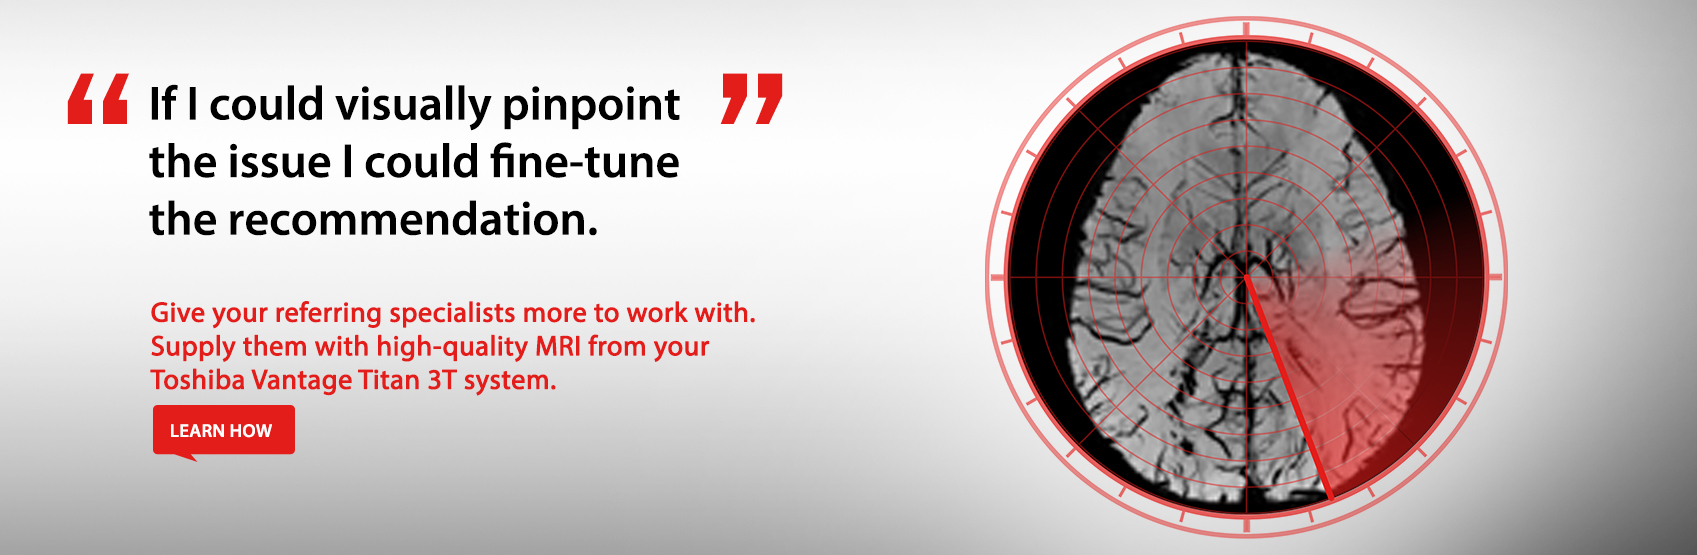 Give your referring specialists more to work with. Supply them with high-quality MRI from your Toshiba Vantage Titan 3T system. Learn More.